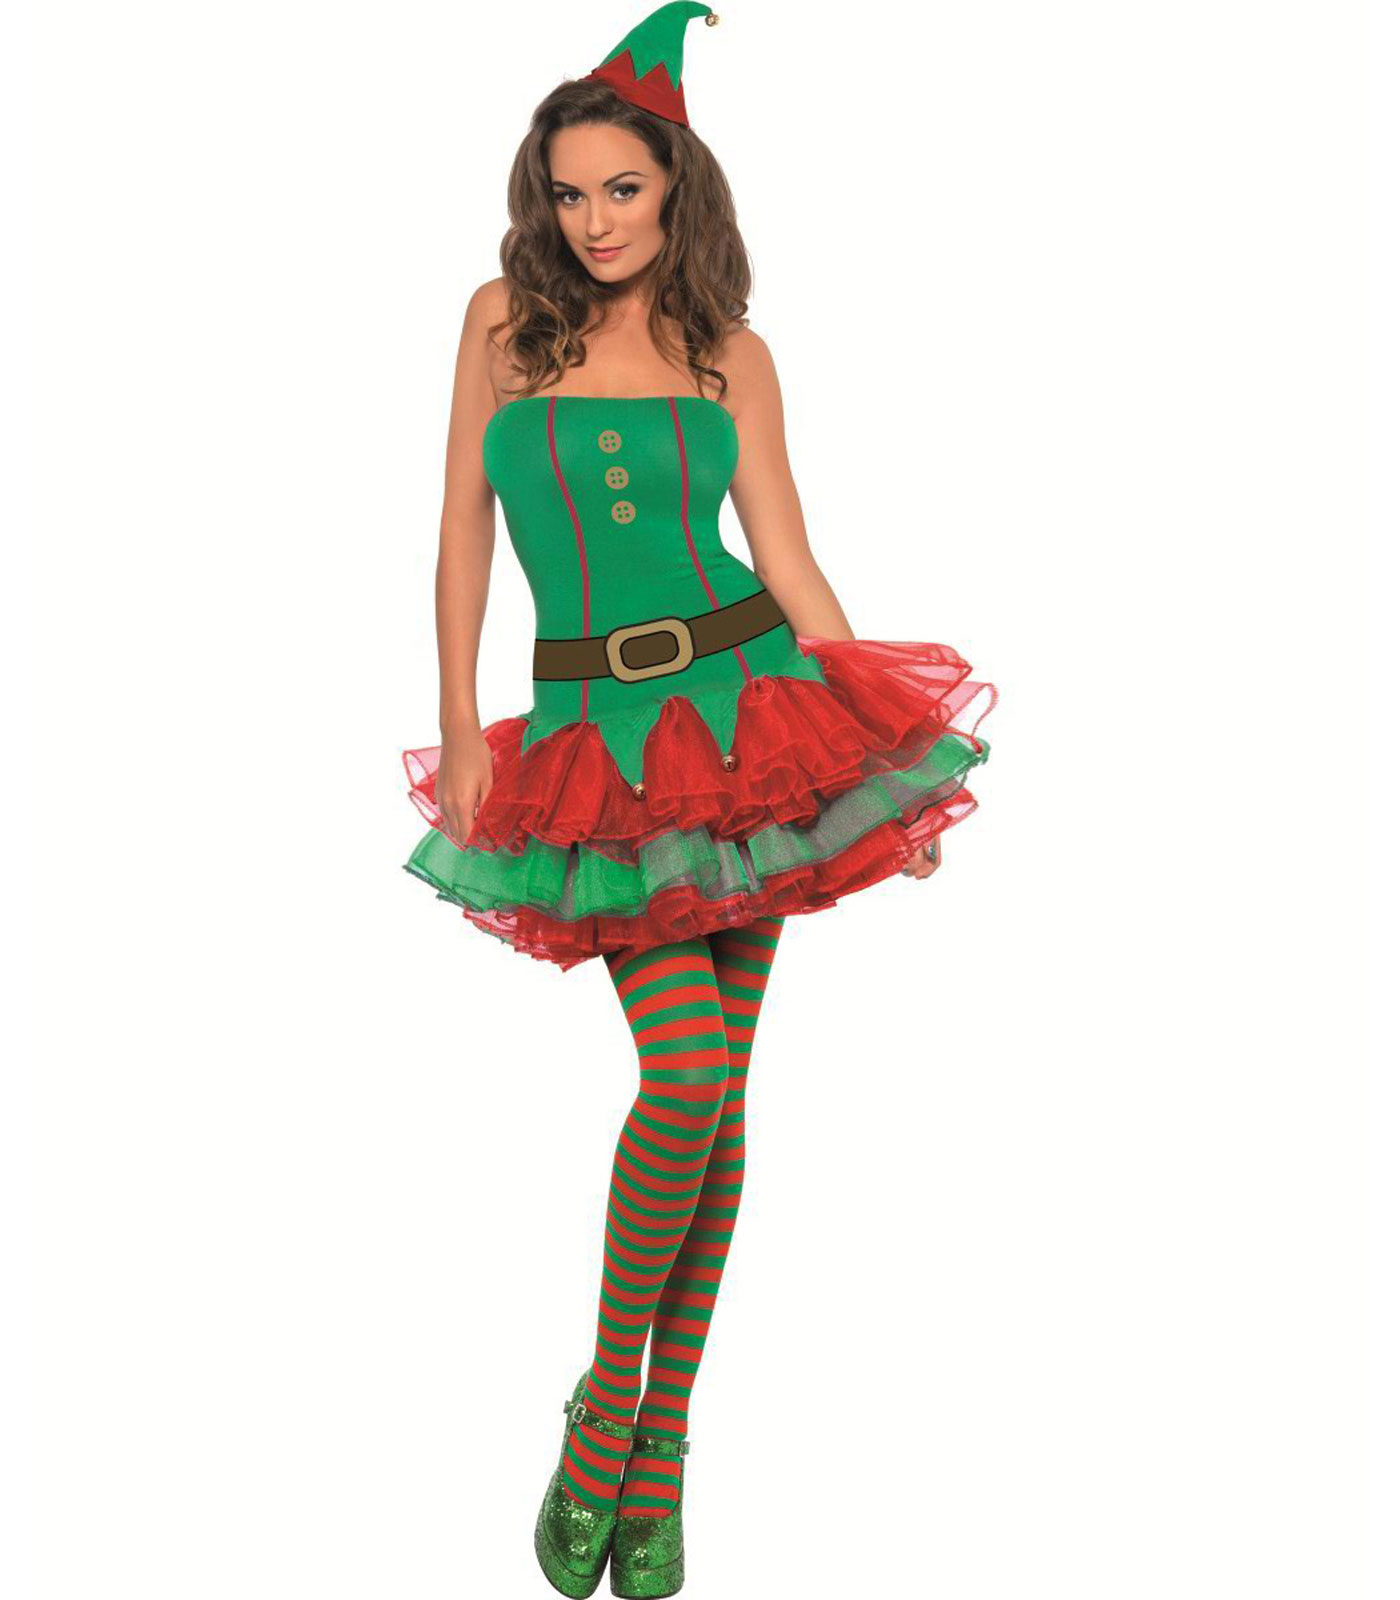 Adult fantasy elf costumes for women naked download